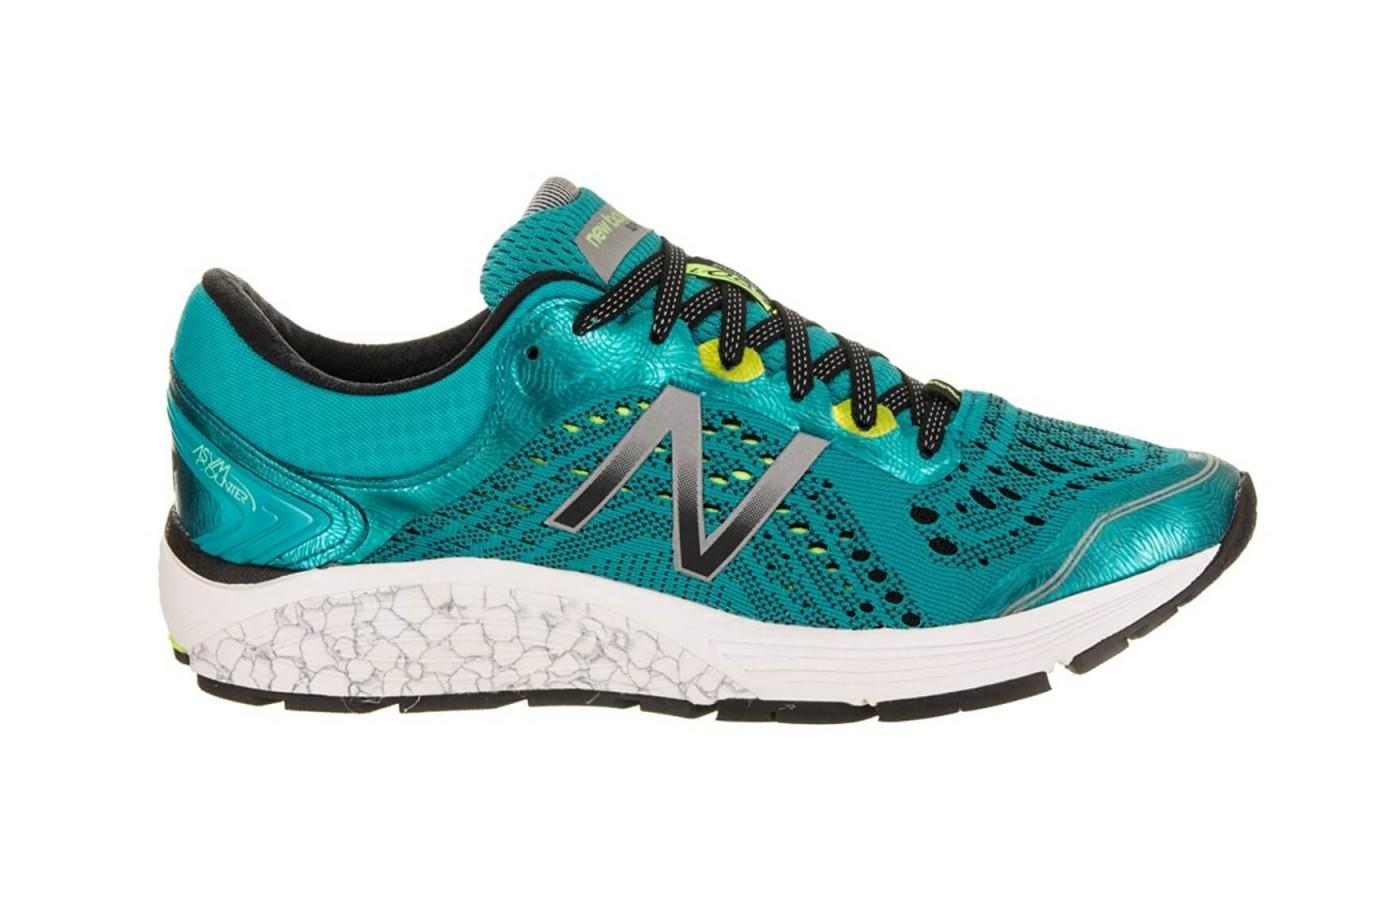 The 1260 V7 offers a comfortable, breathable ride for runners.